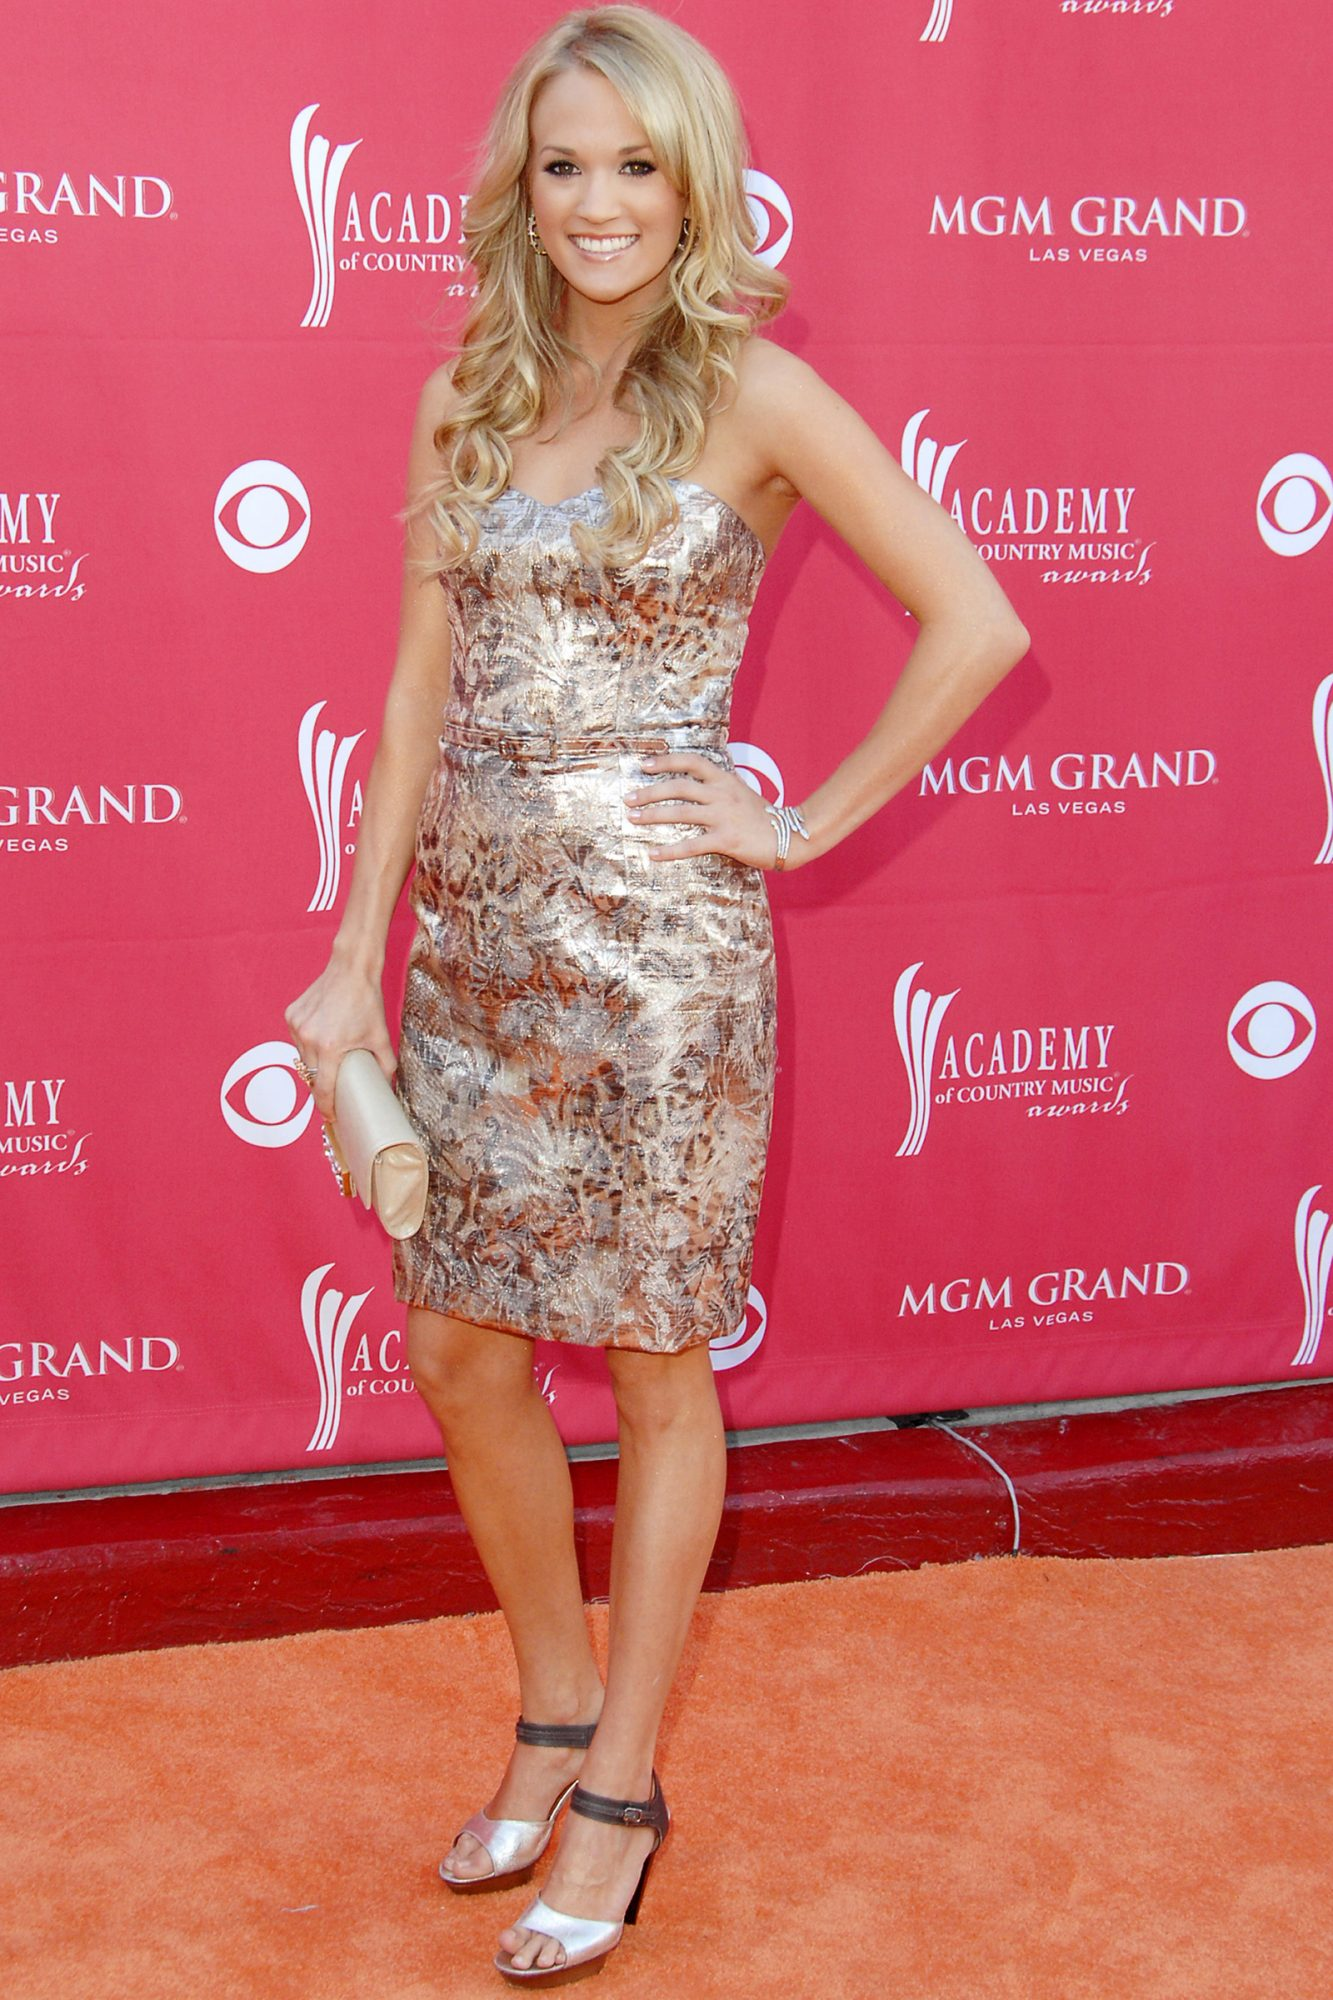 Carrie Underwood Academy of Country Music Awards